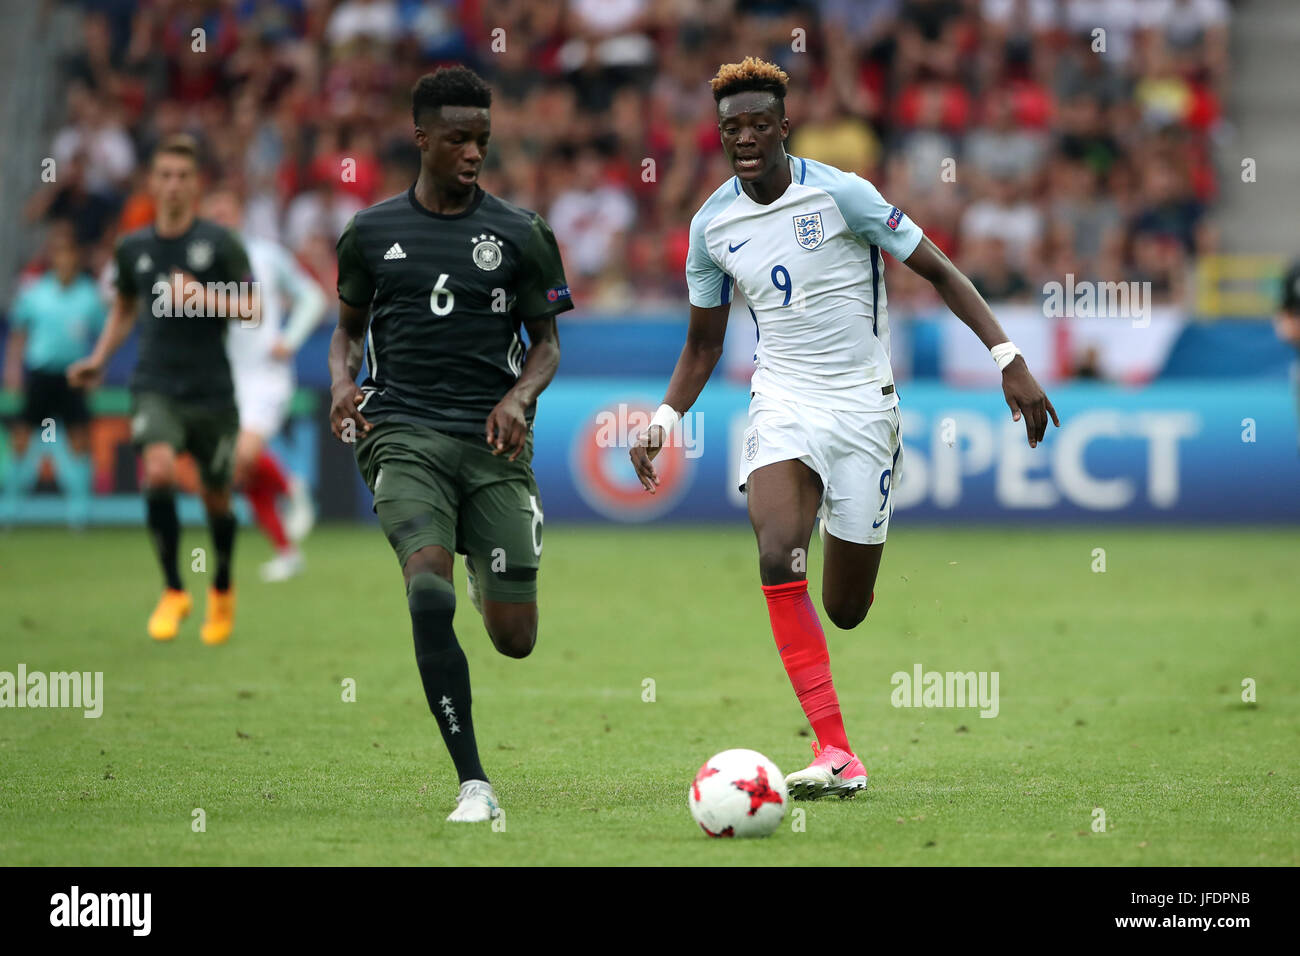 England's Tammy Abraham (right) and Germany's Gideon Jung battle for the ball - Stock Image